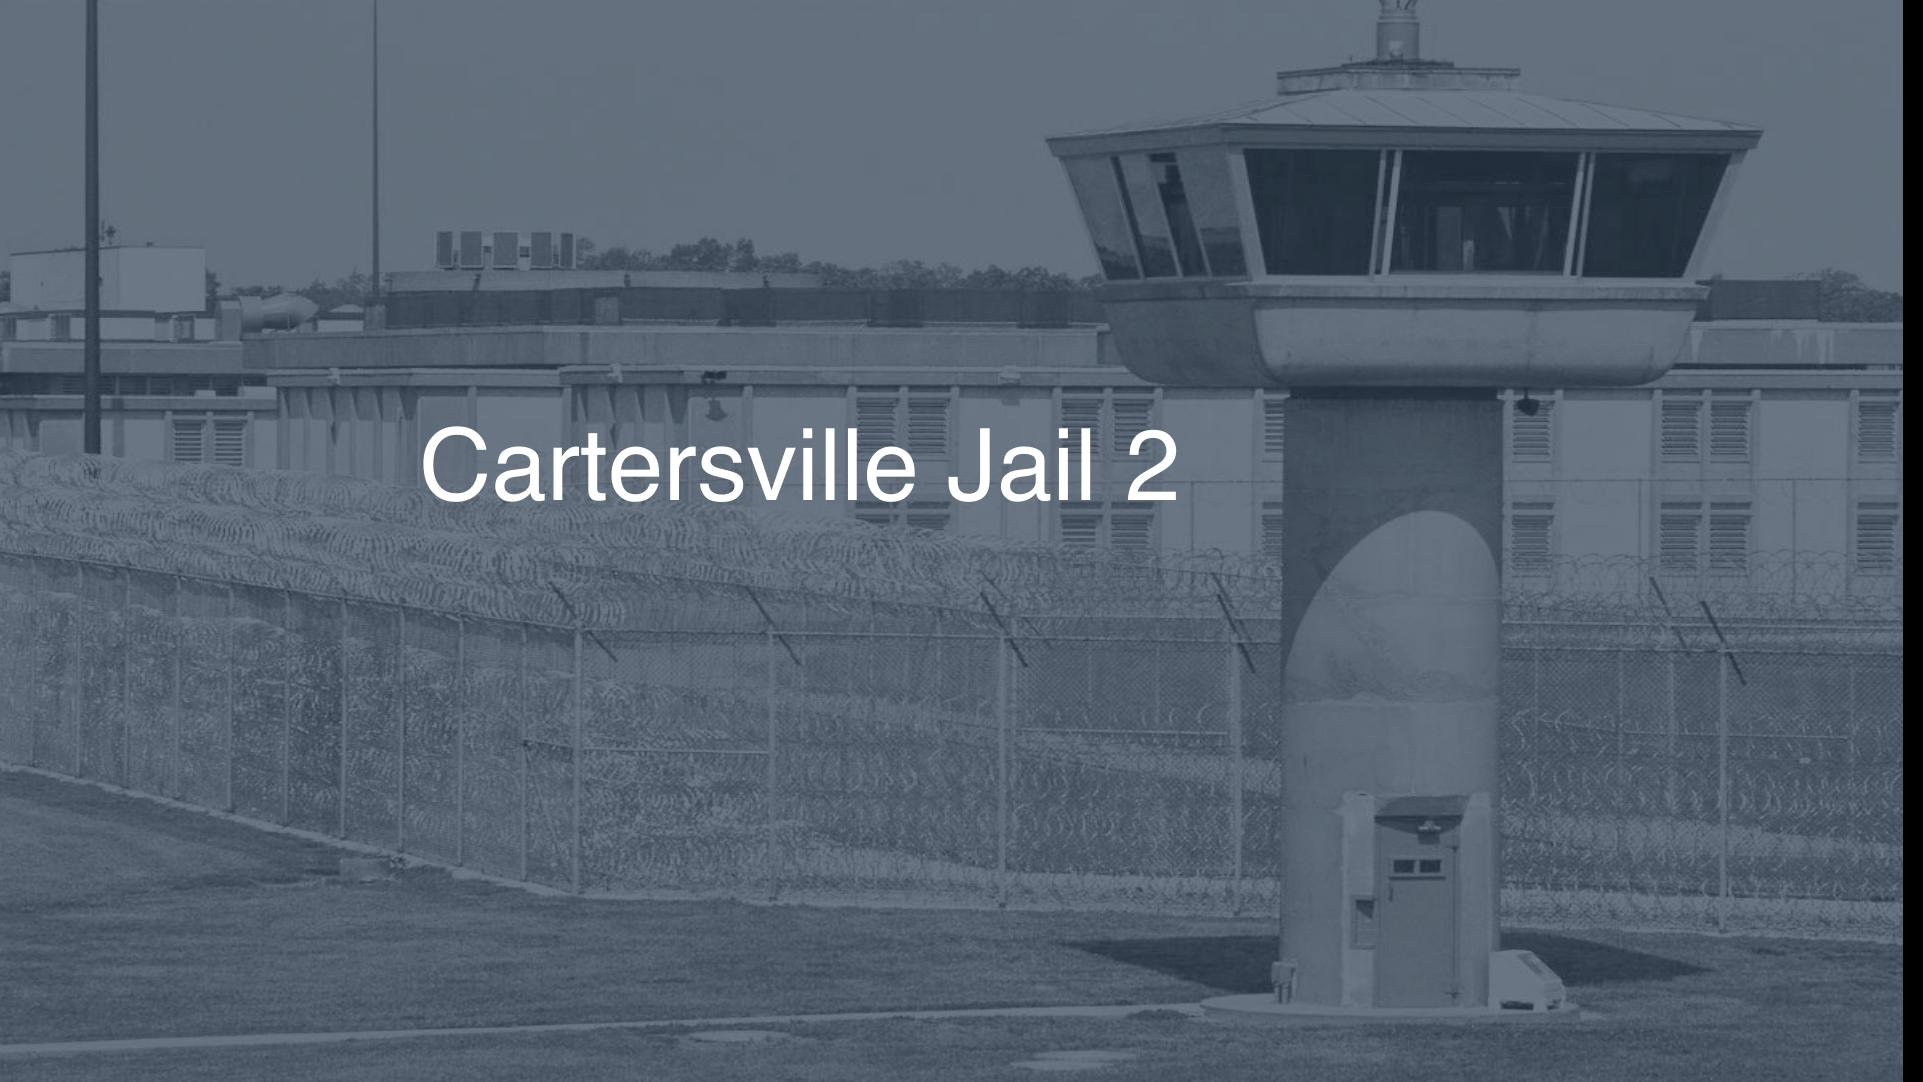 Cartersville Jail correctional facility picture